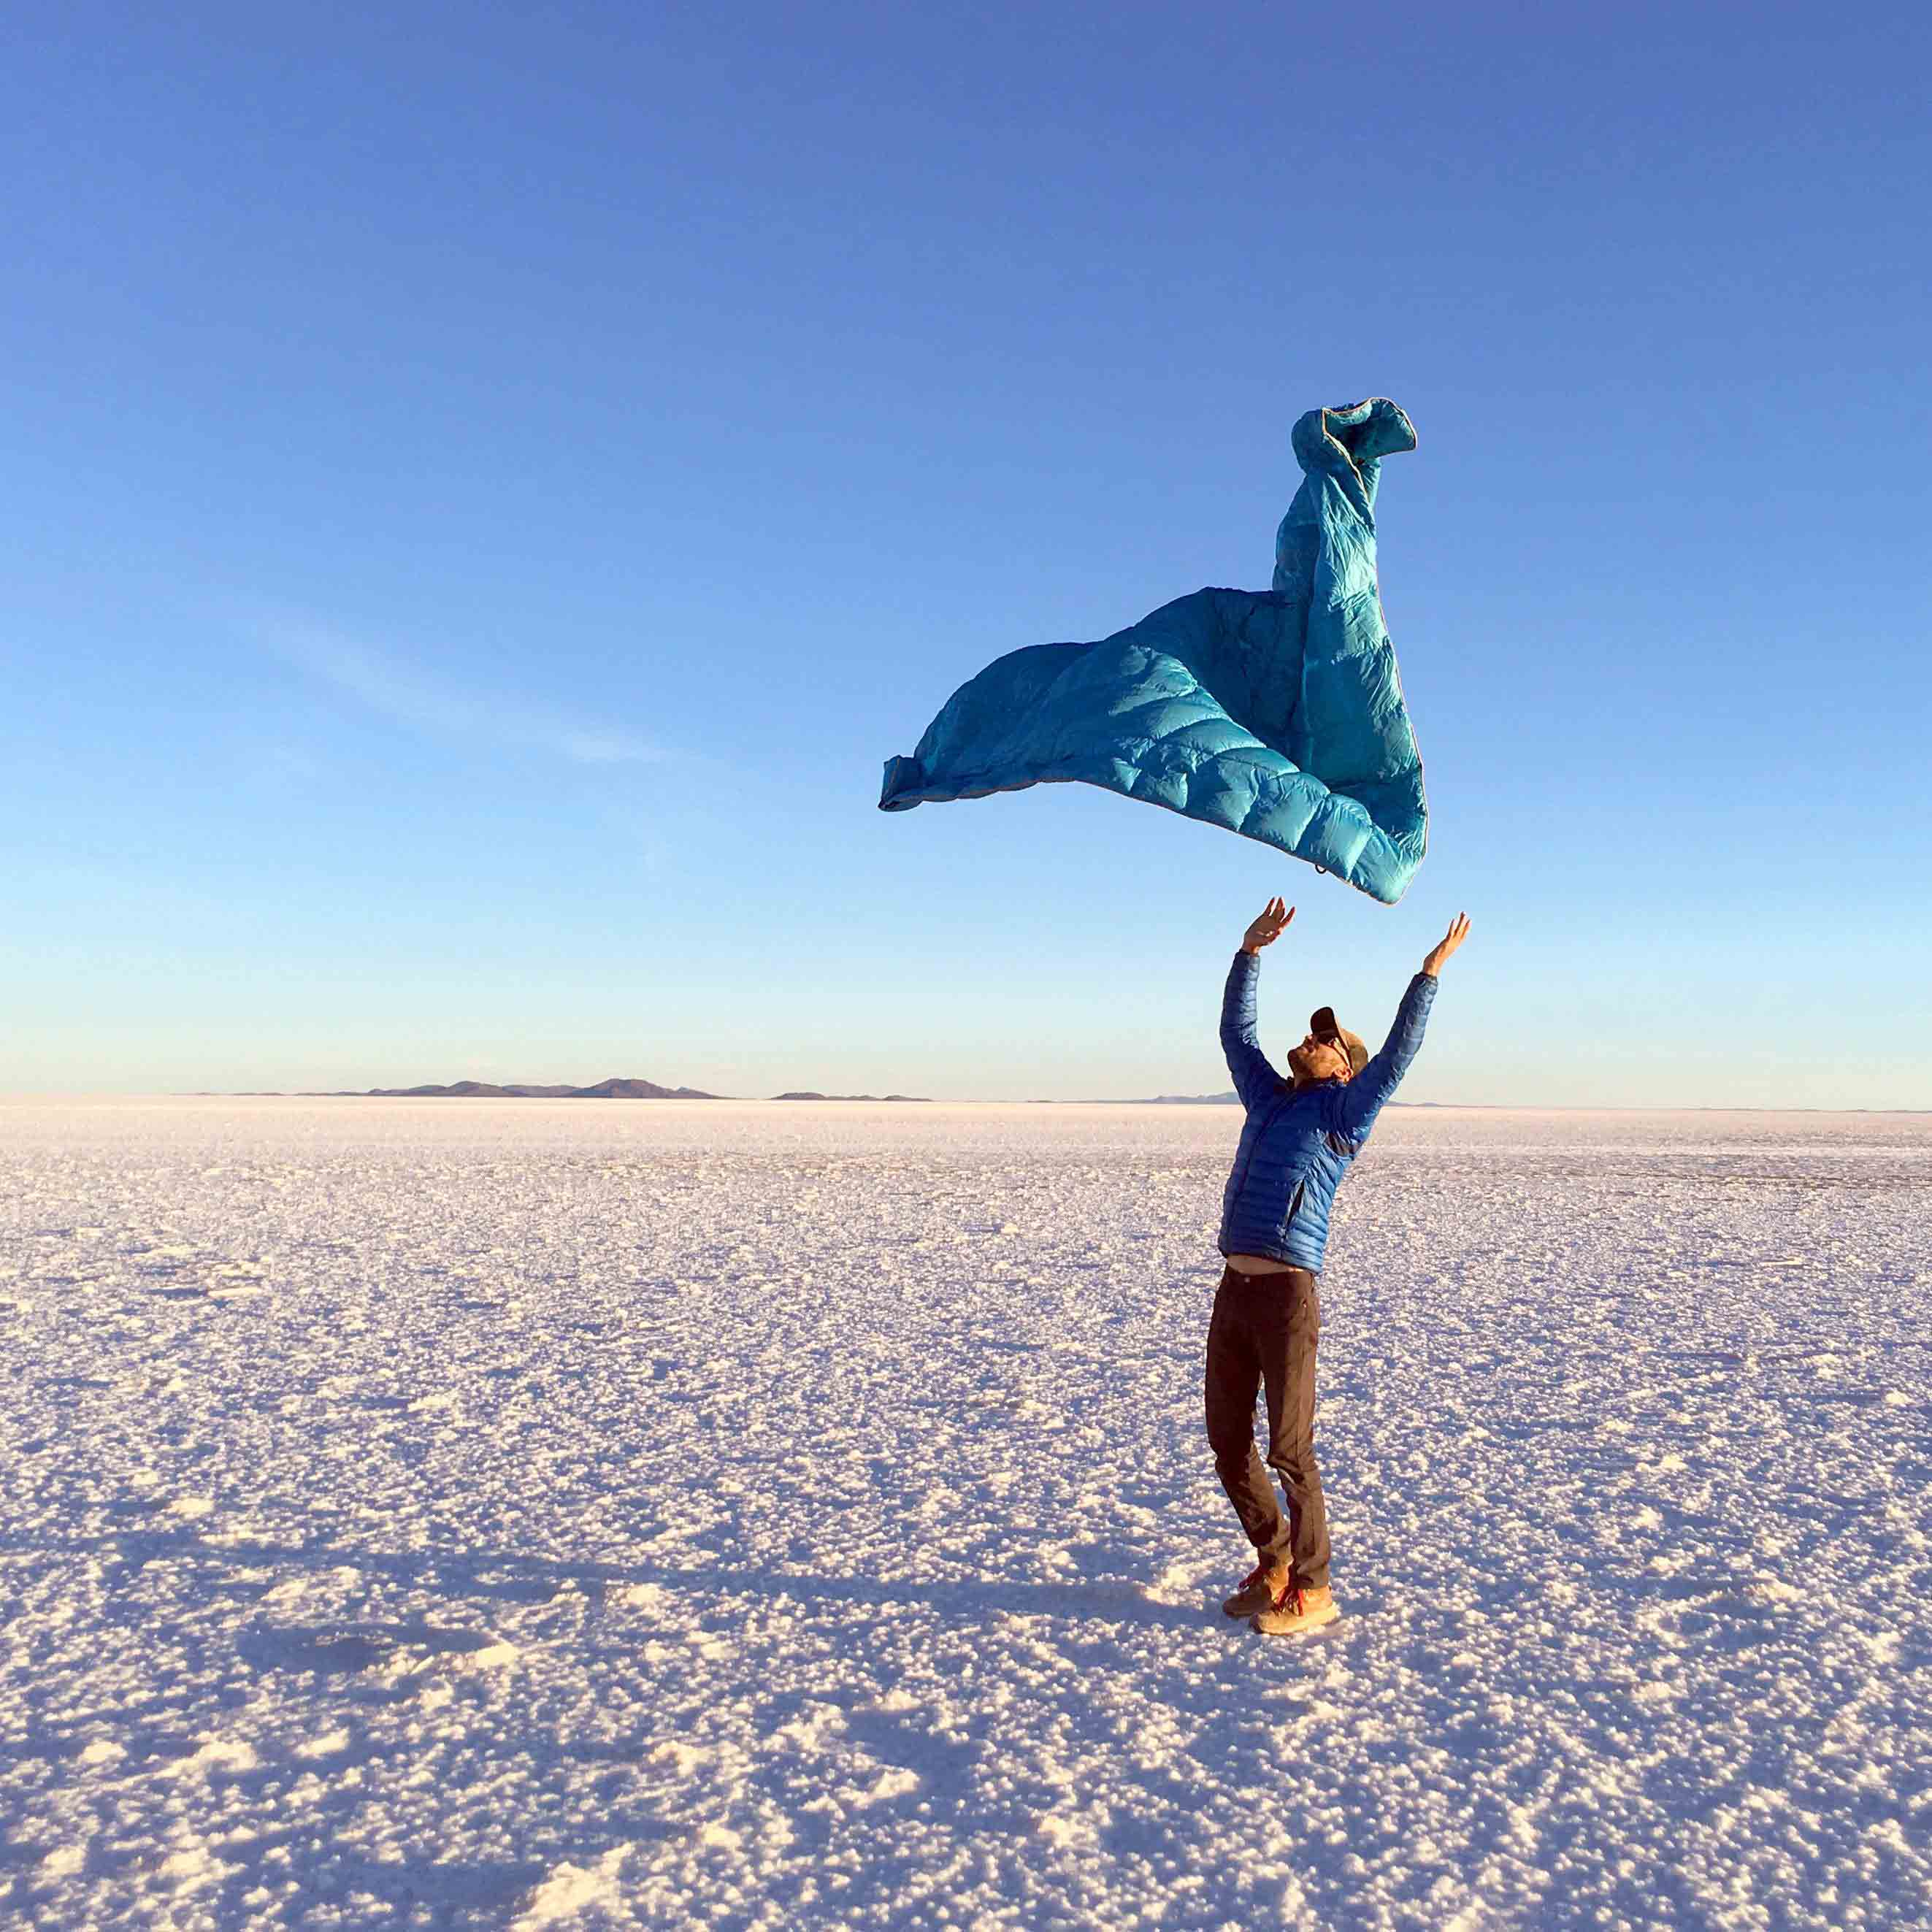 Throwing blanket into the air in the salt flats